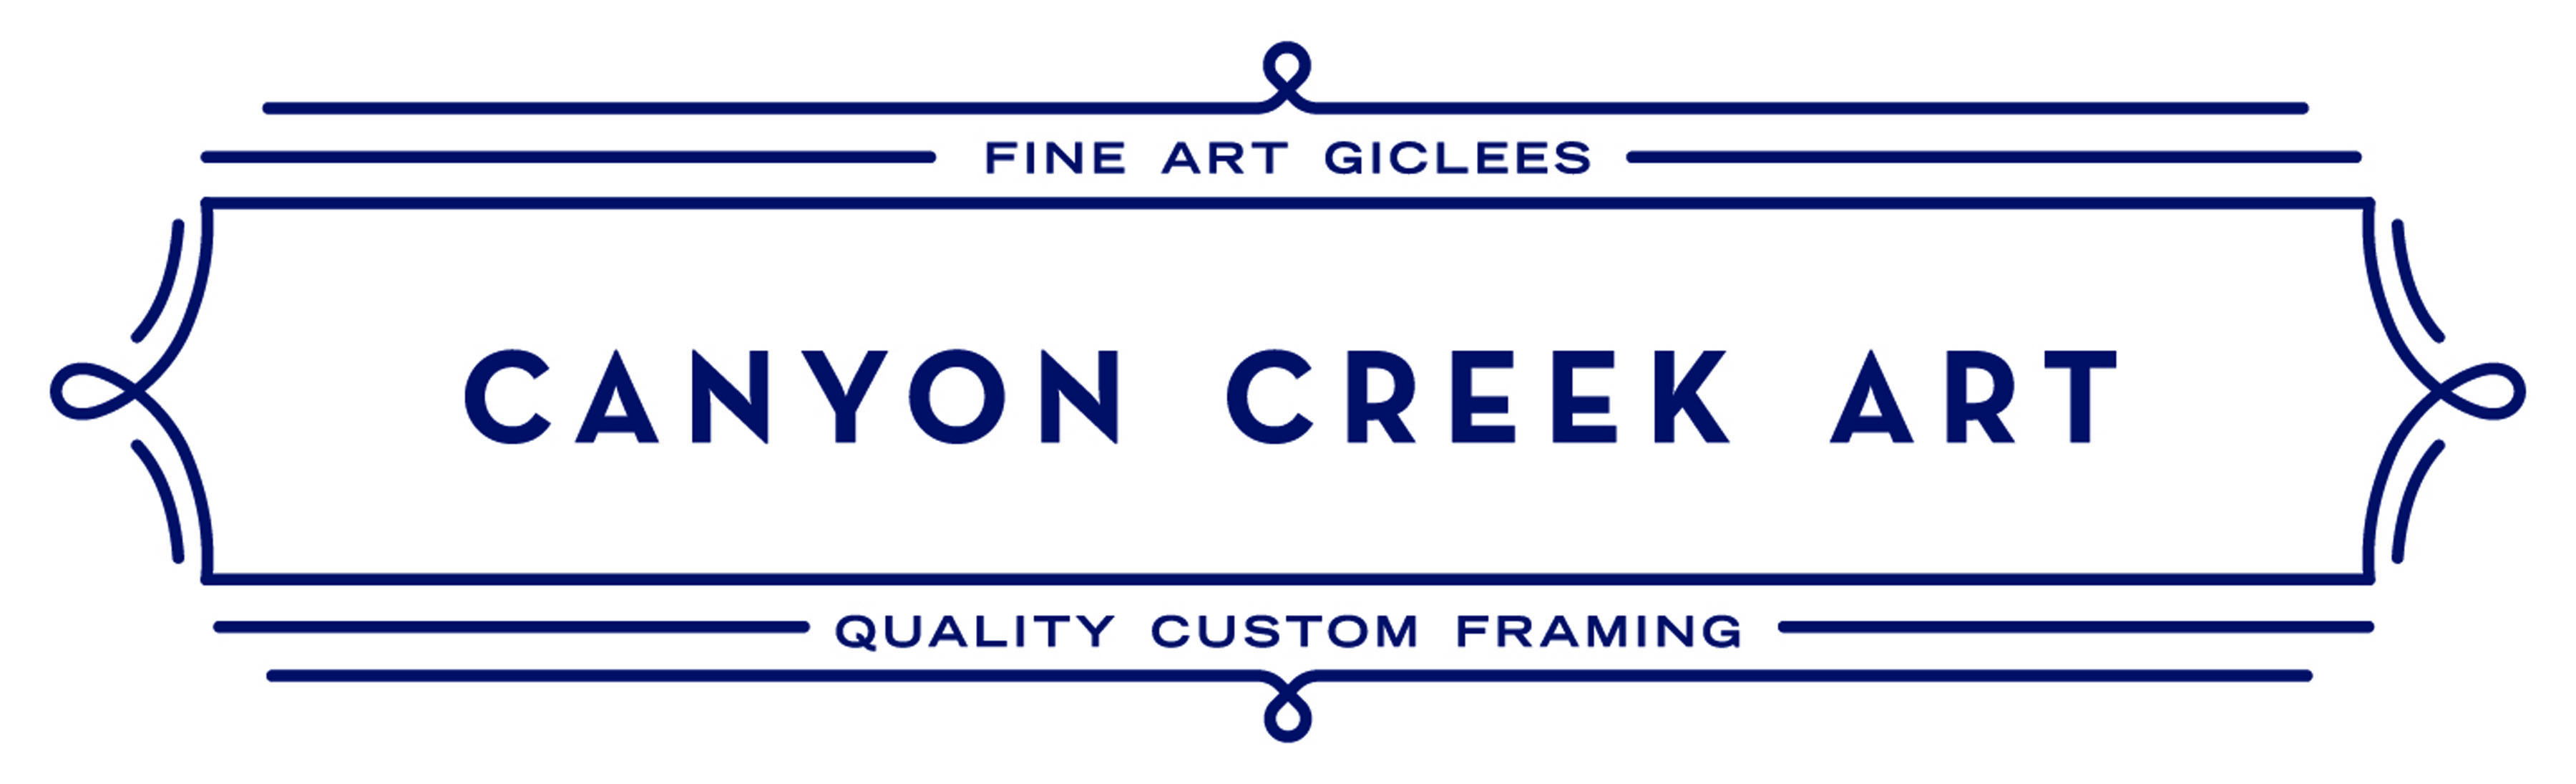 Canyon Creek Art